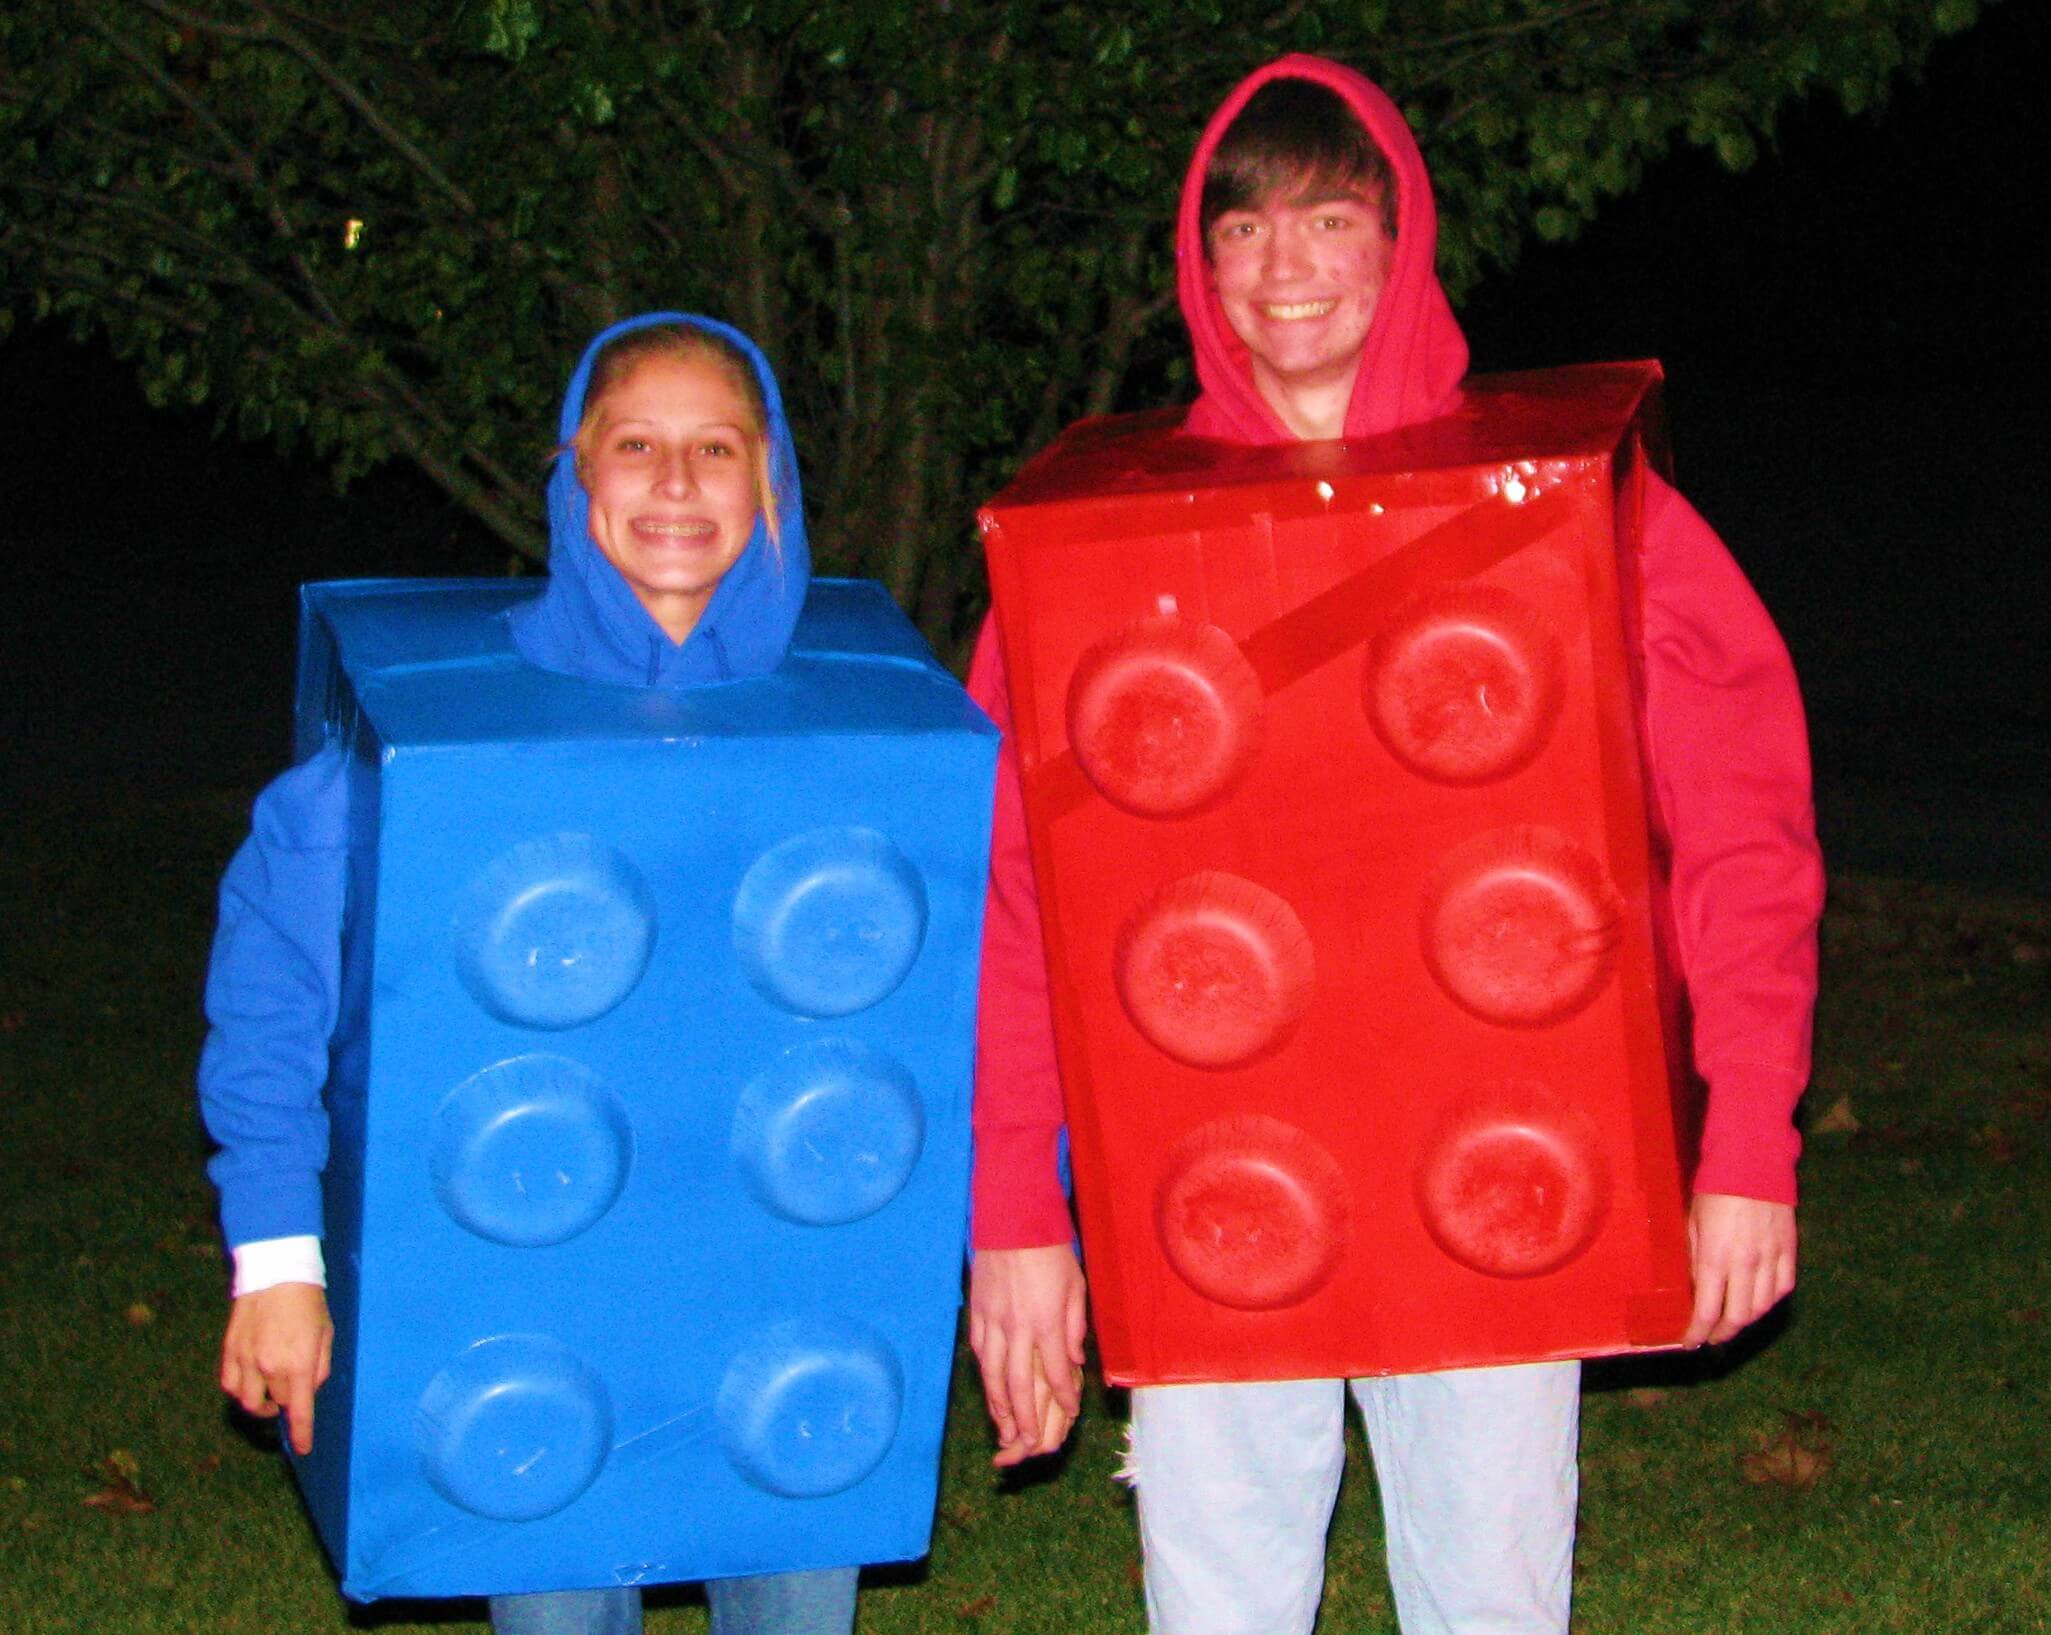 lego building blocks funny halloween costume for couple